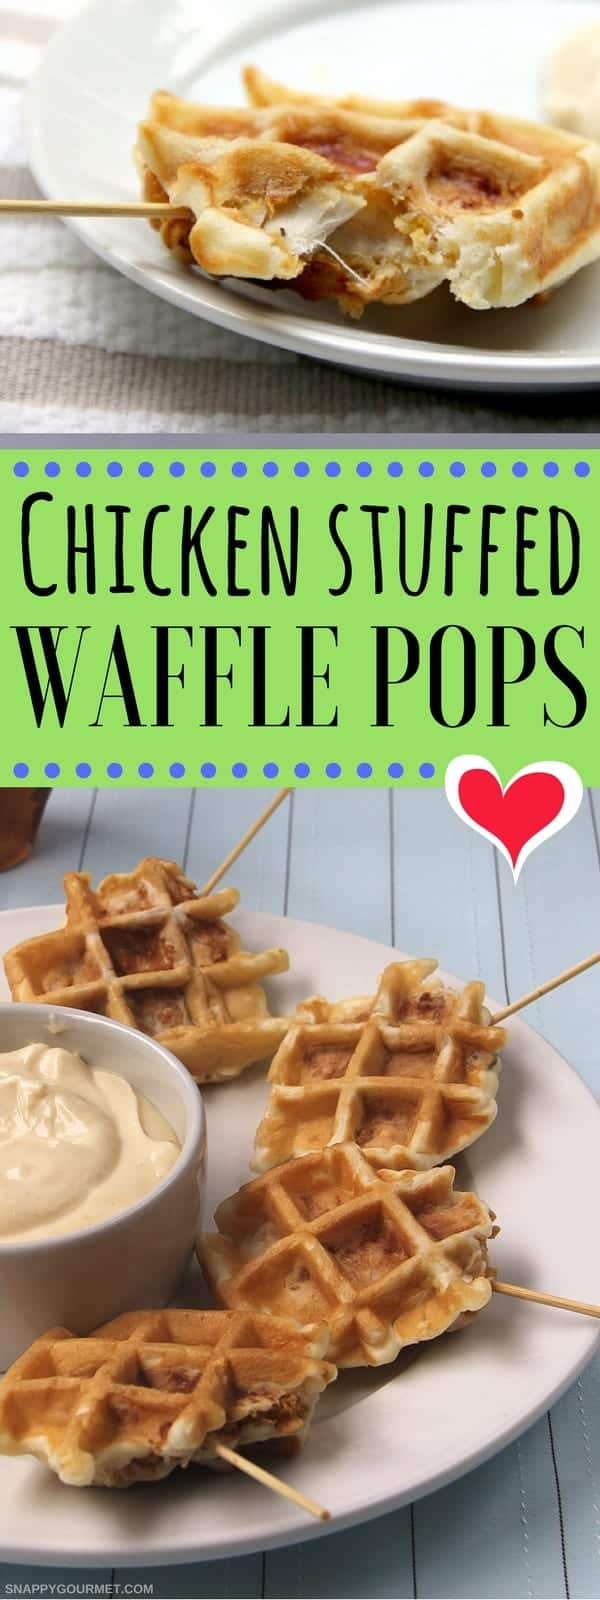 Chicken Stuffed Waffle Pops - easy chicken and waffles appetizer with homemade crunchy chicken nuggets dipped in a quick Bisquick waffle batter. #Chicken #Waffles #Appetizer #SnappyGourmet